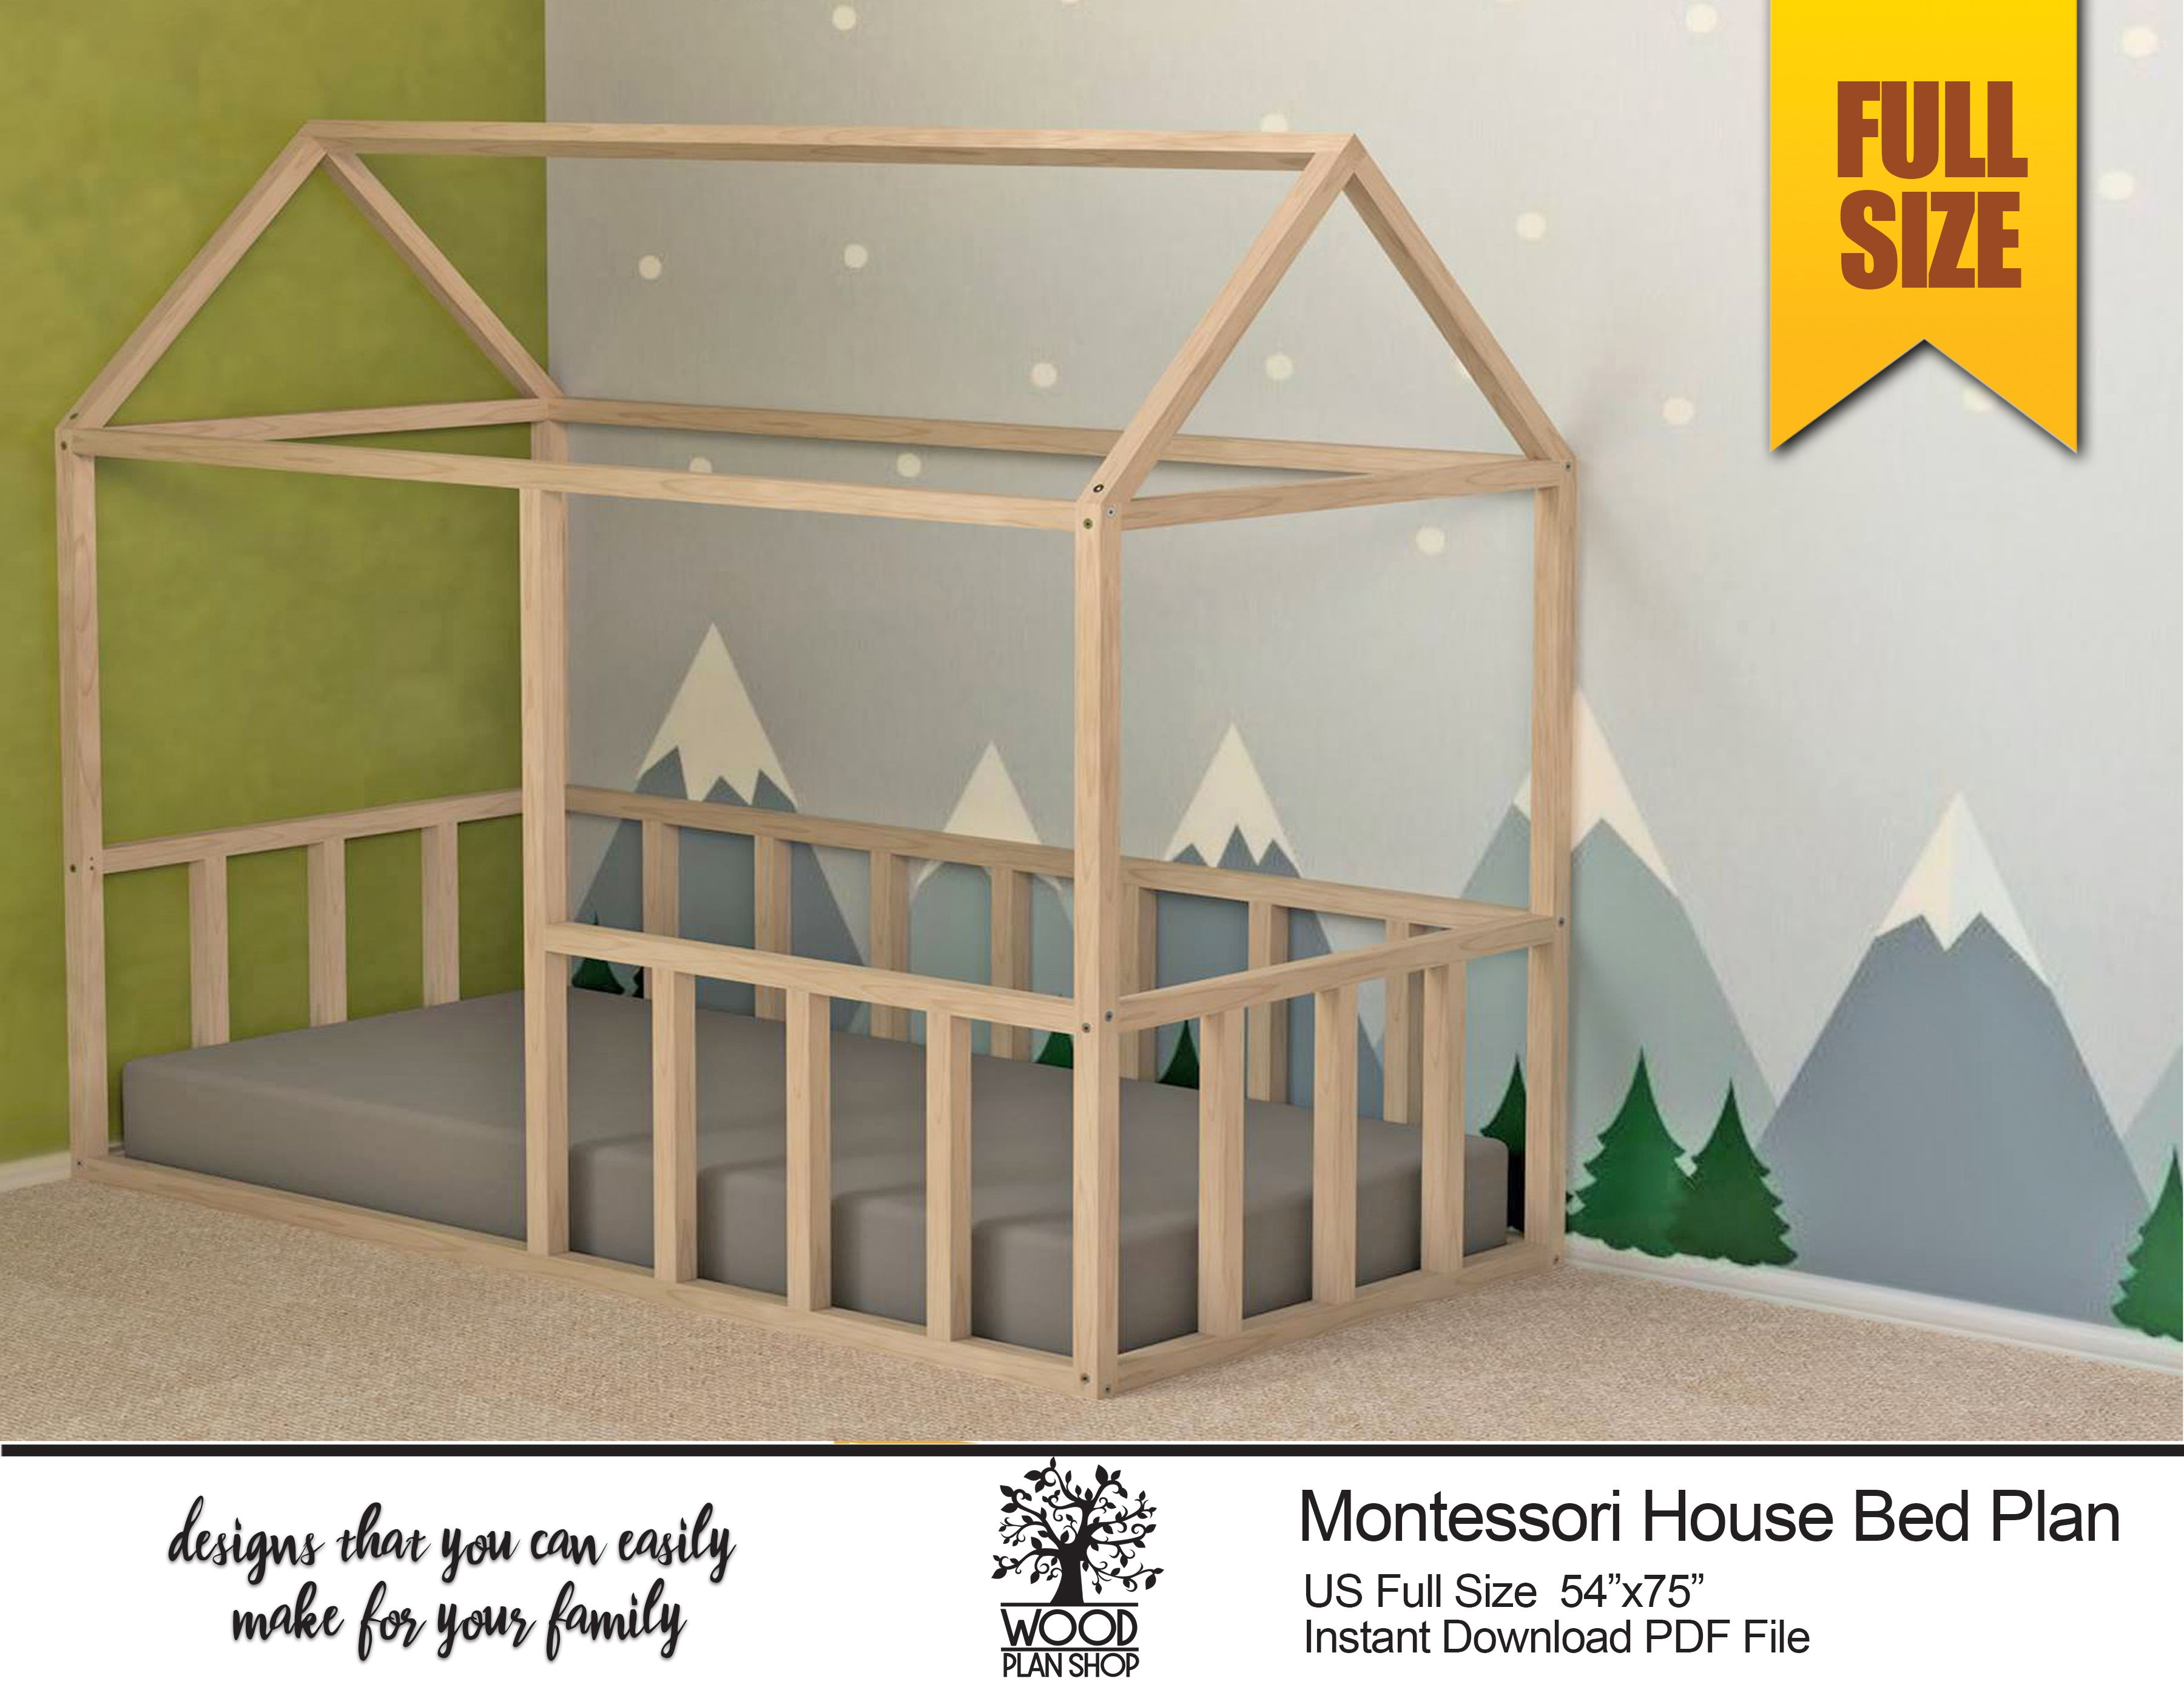 Full Size Montessori Bed Plan House Bed Frame Plan For Kids Bedroom Diy Pdf Plan Toddler Floor Bed House Frame Bed Kids Bedroom Diy Bed Frame Plans